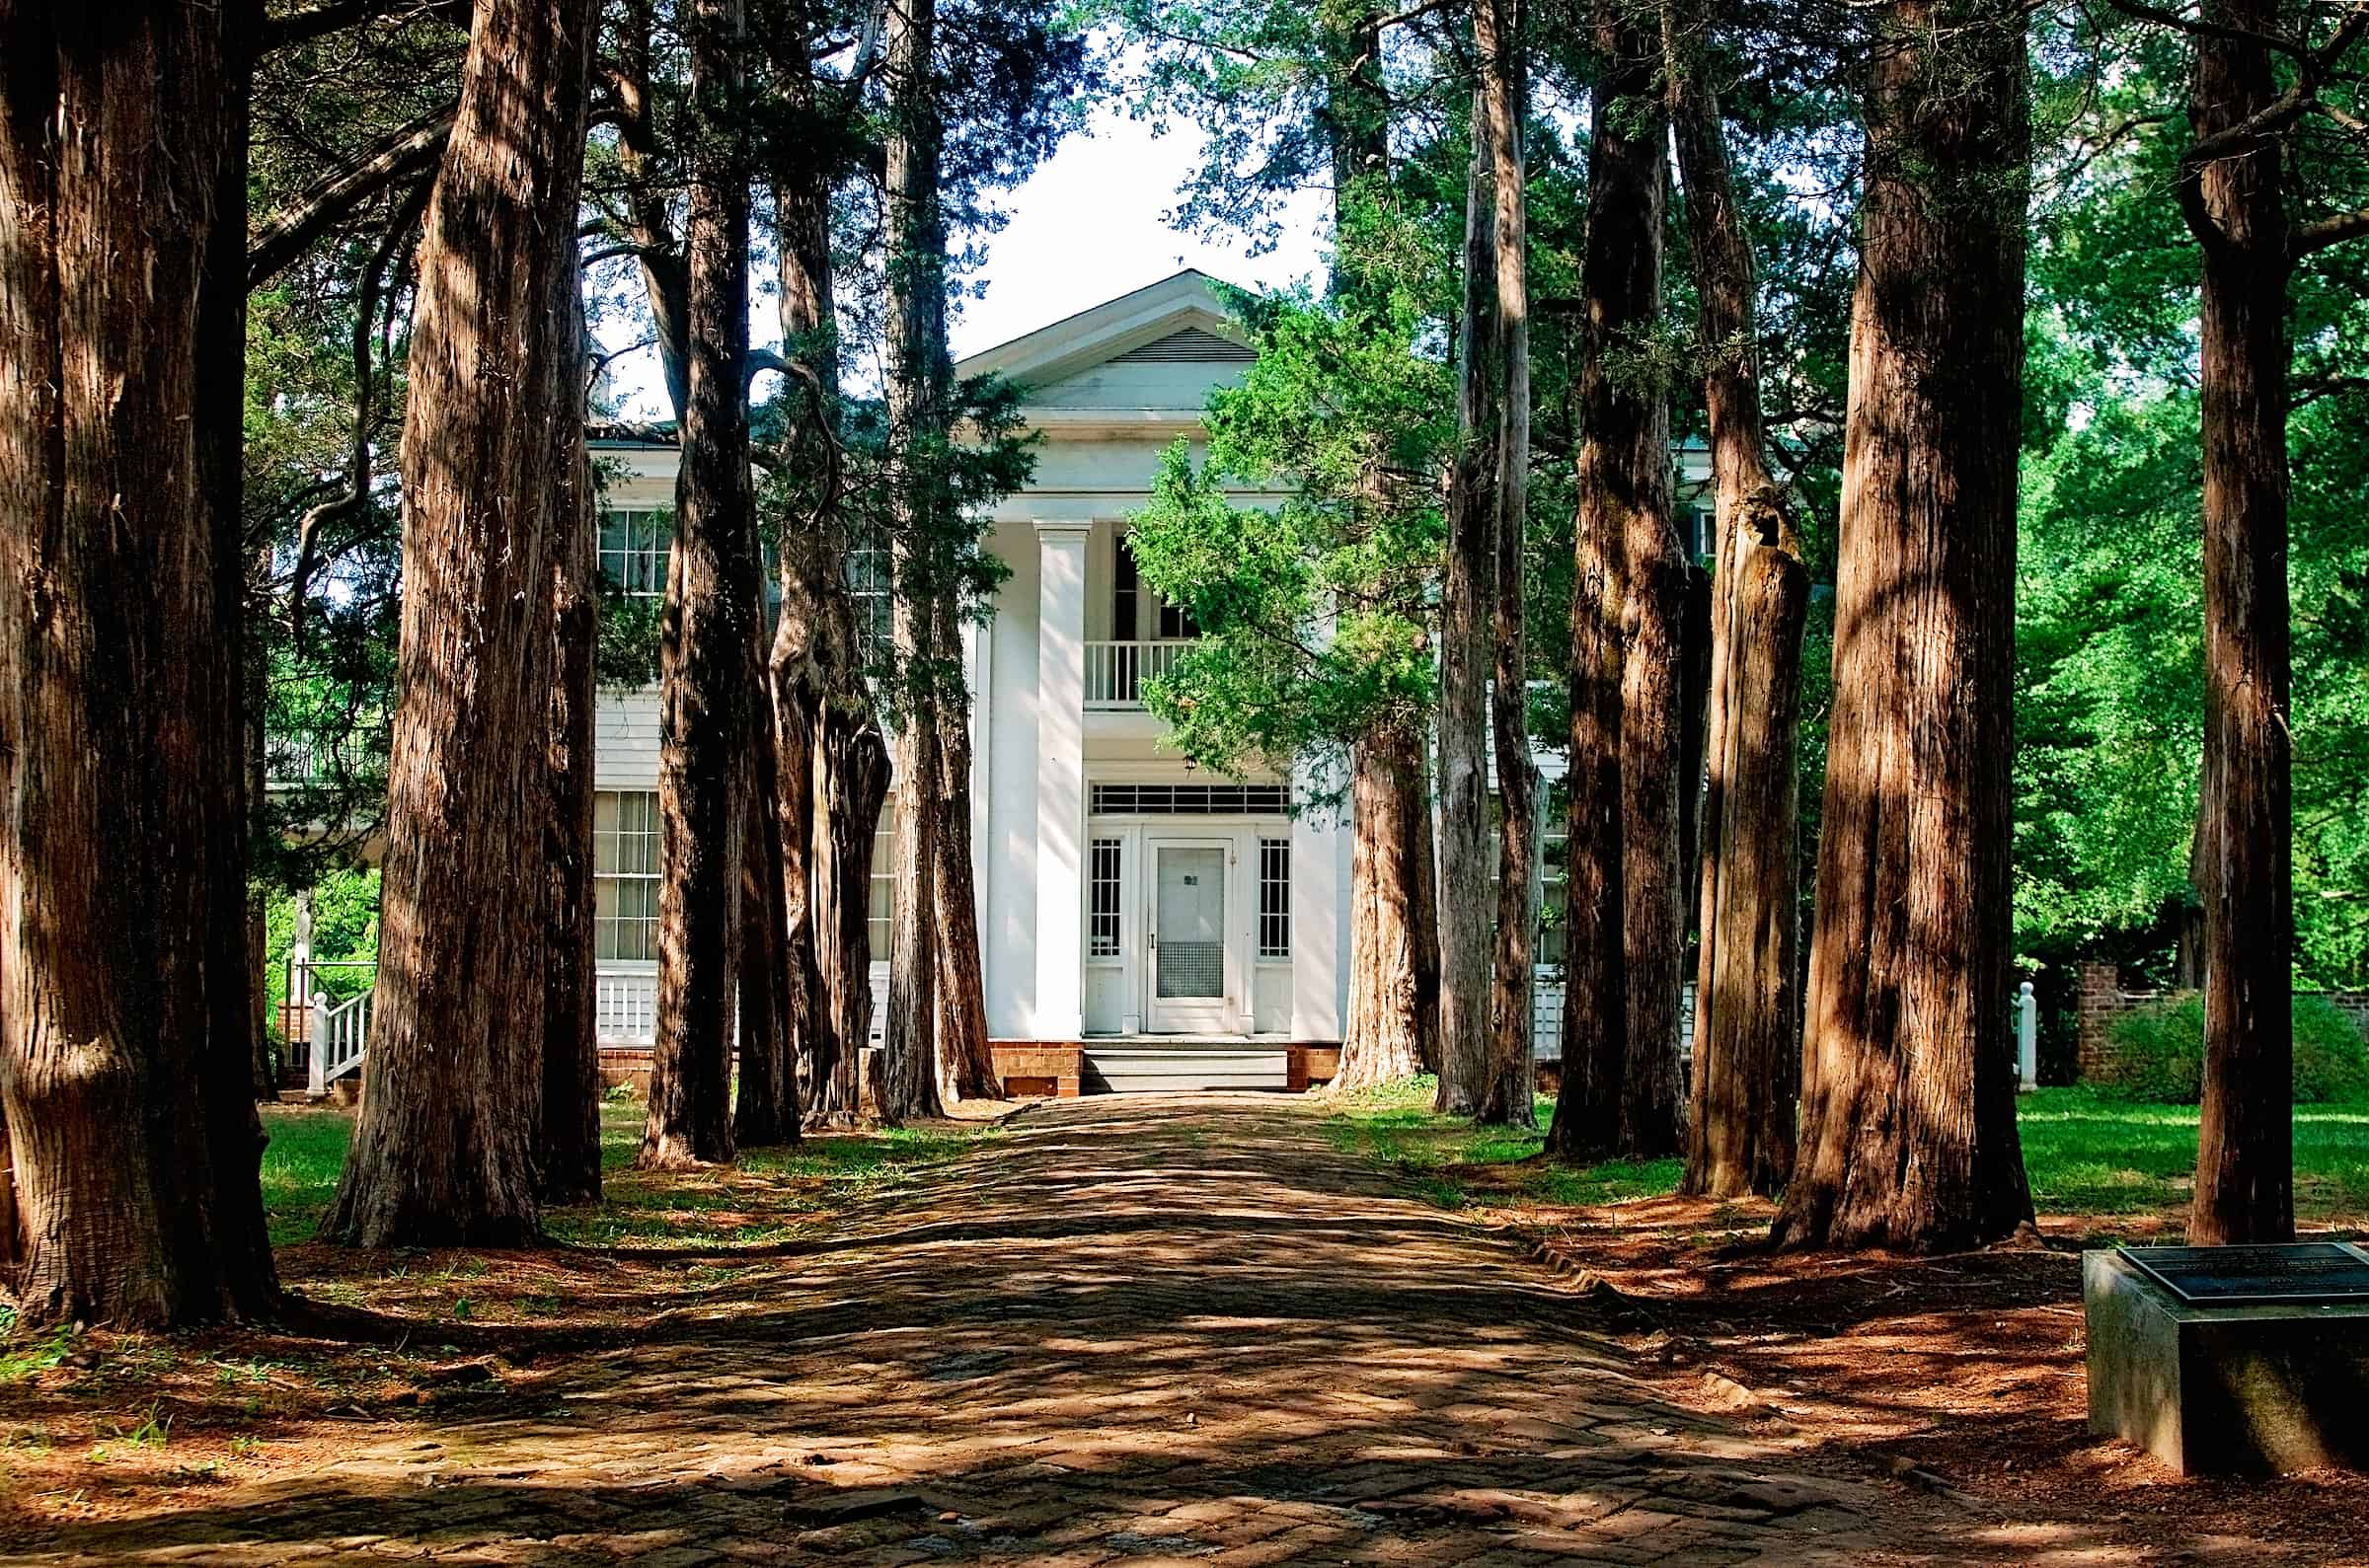 Rowan Oak, William Faulkner's home in Oxford, Mississippi